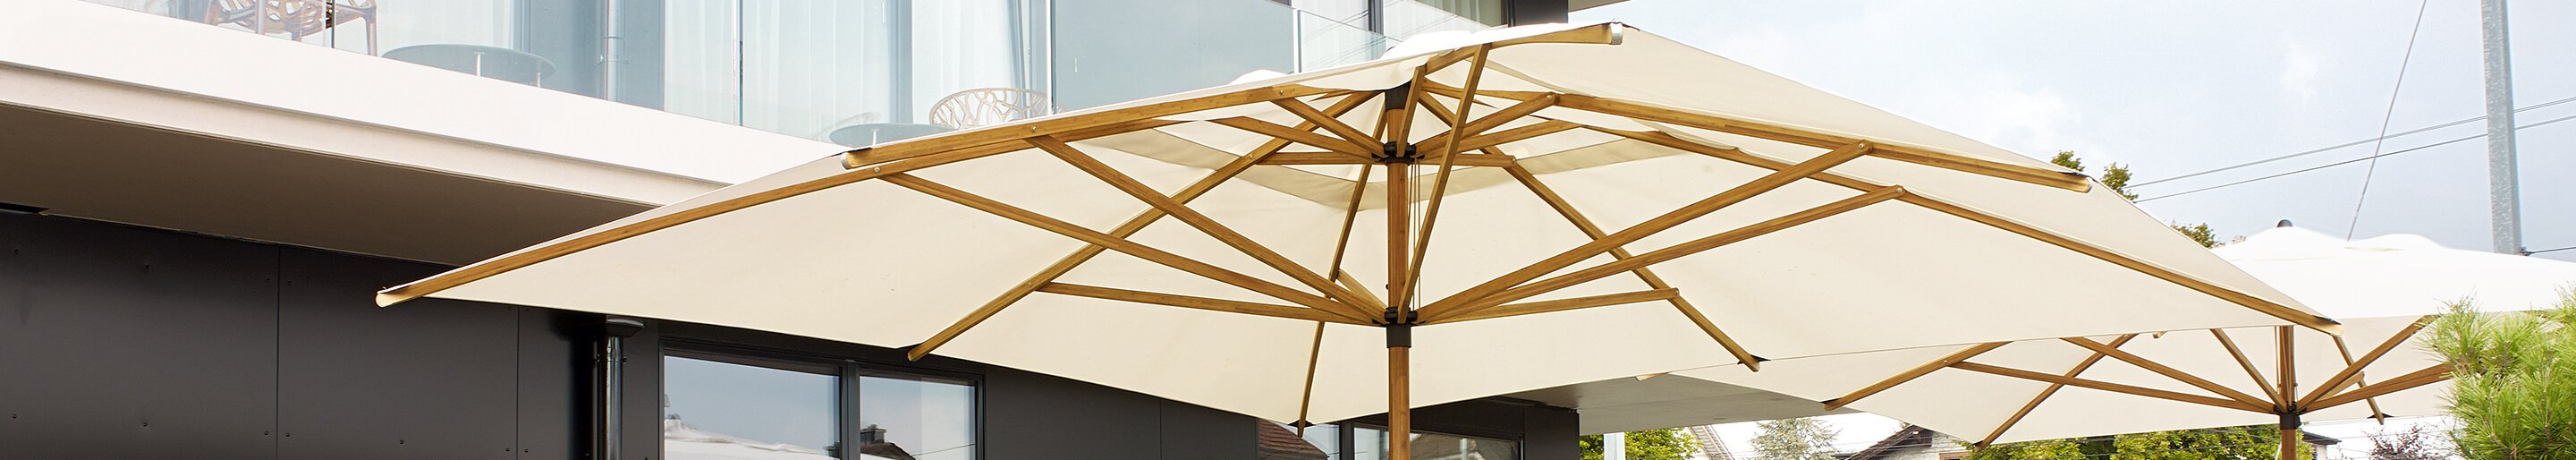 Outdoor Sun shades for your restaurant or hotel